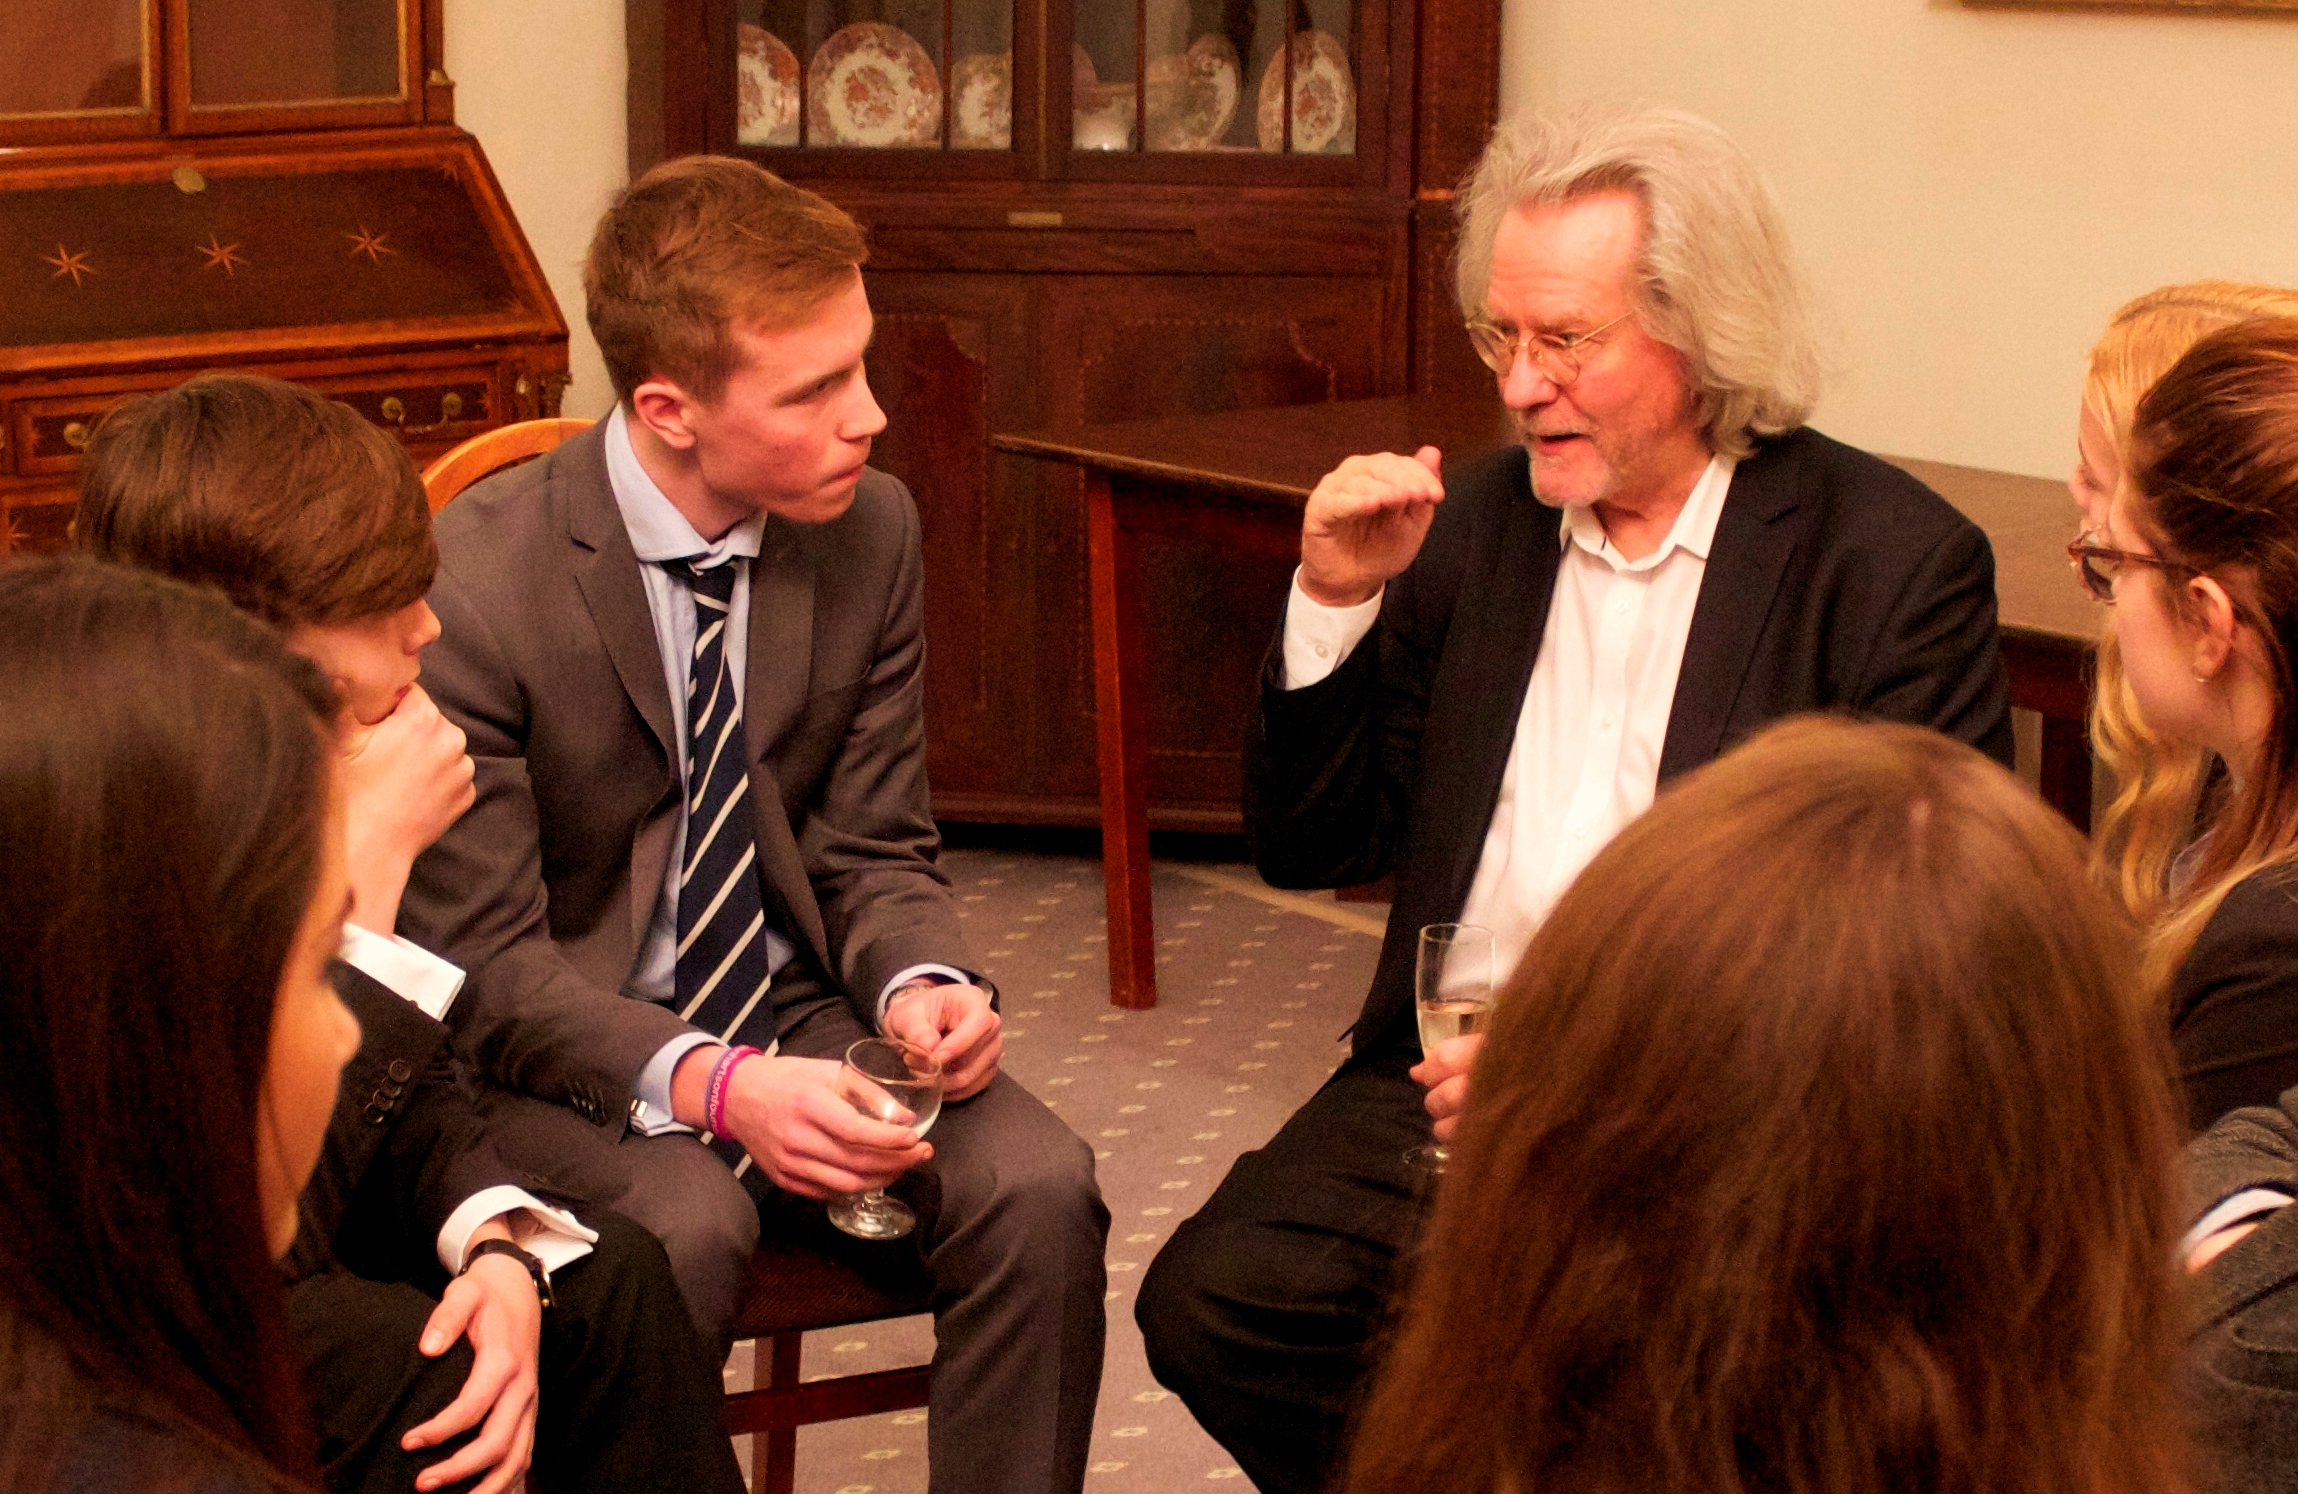 Lancing College students enjoy a stimulating and thought-provoking debate with Professor A C Grayling